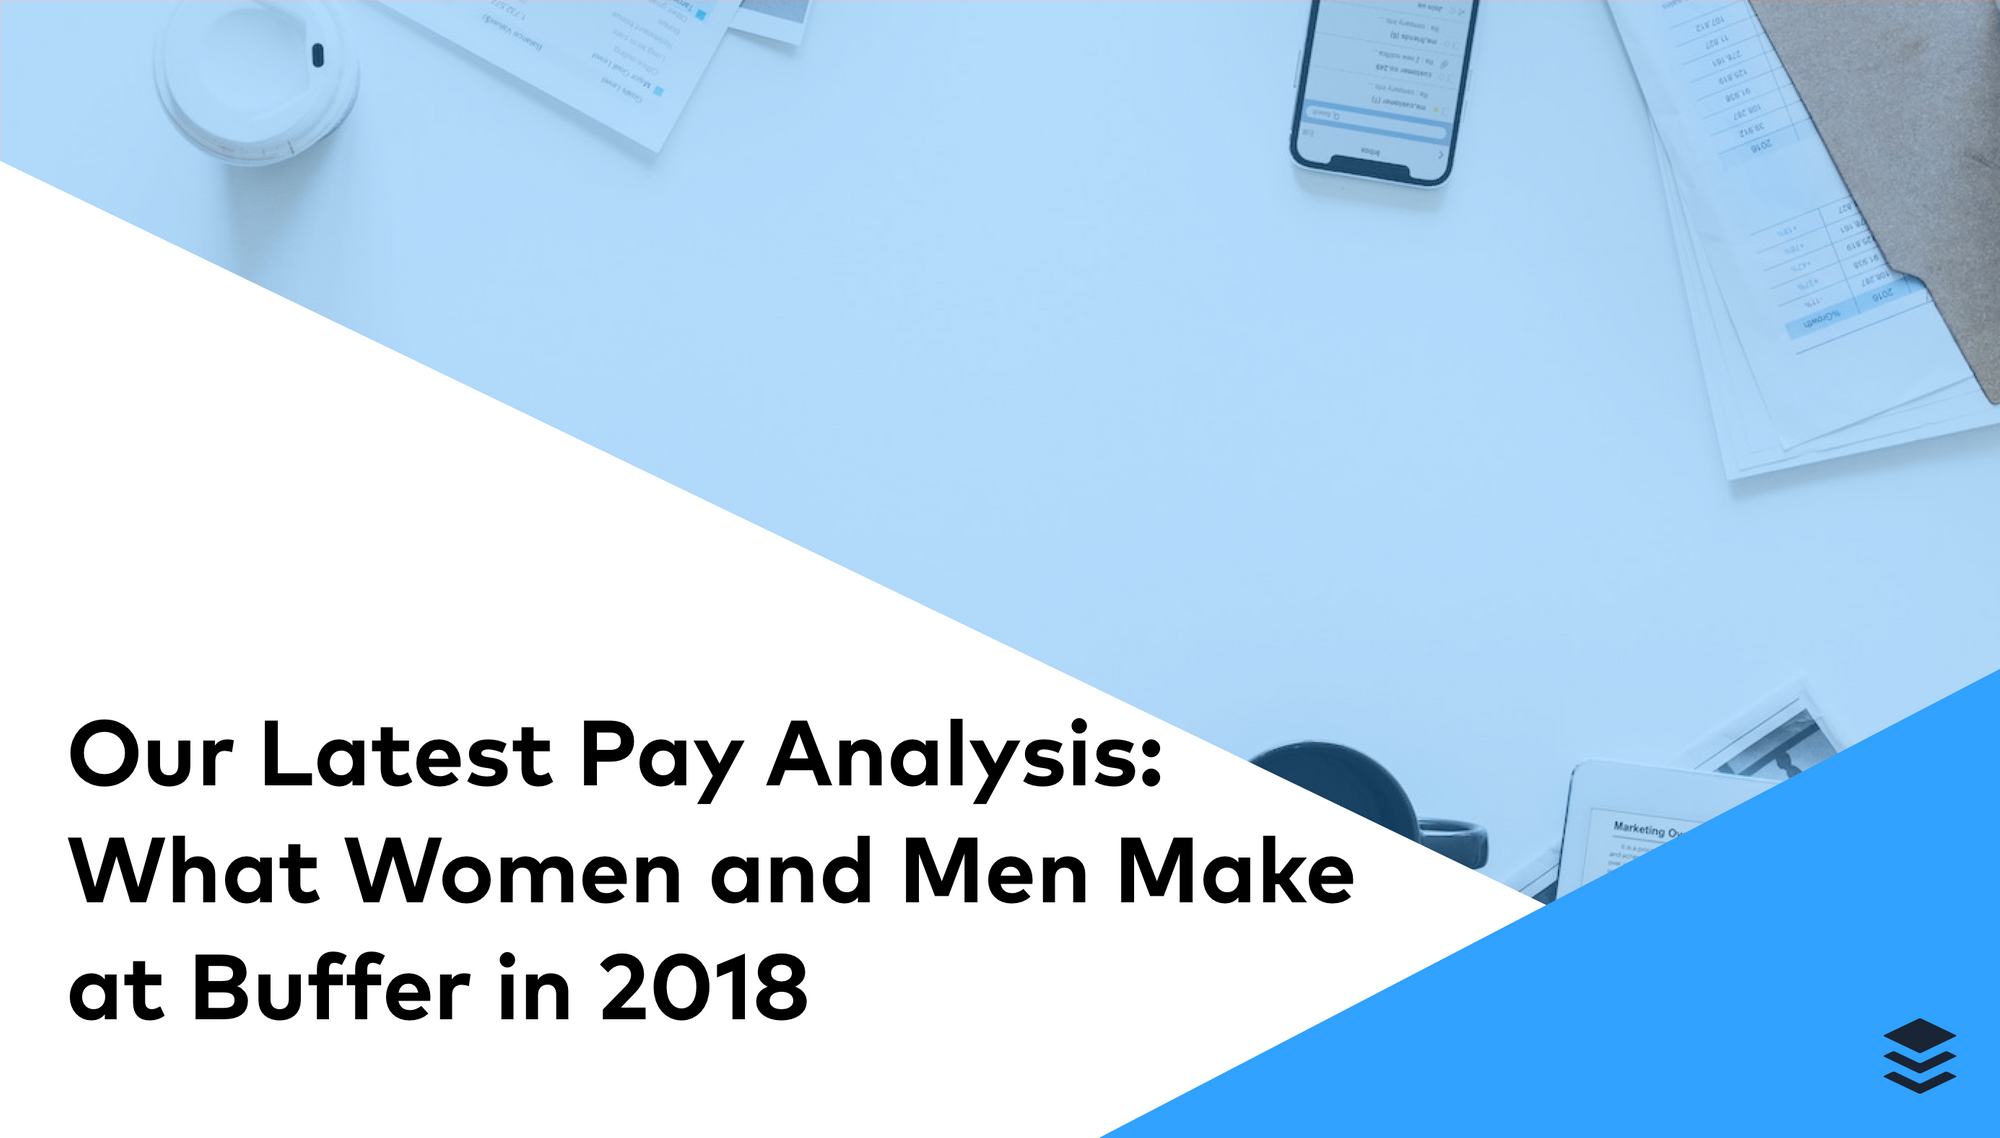 Our Latest Pay Analysis: What Women and Men Make at Buffer in 2018